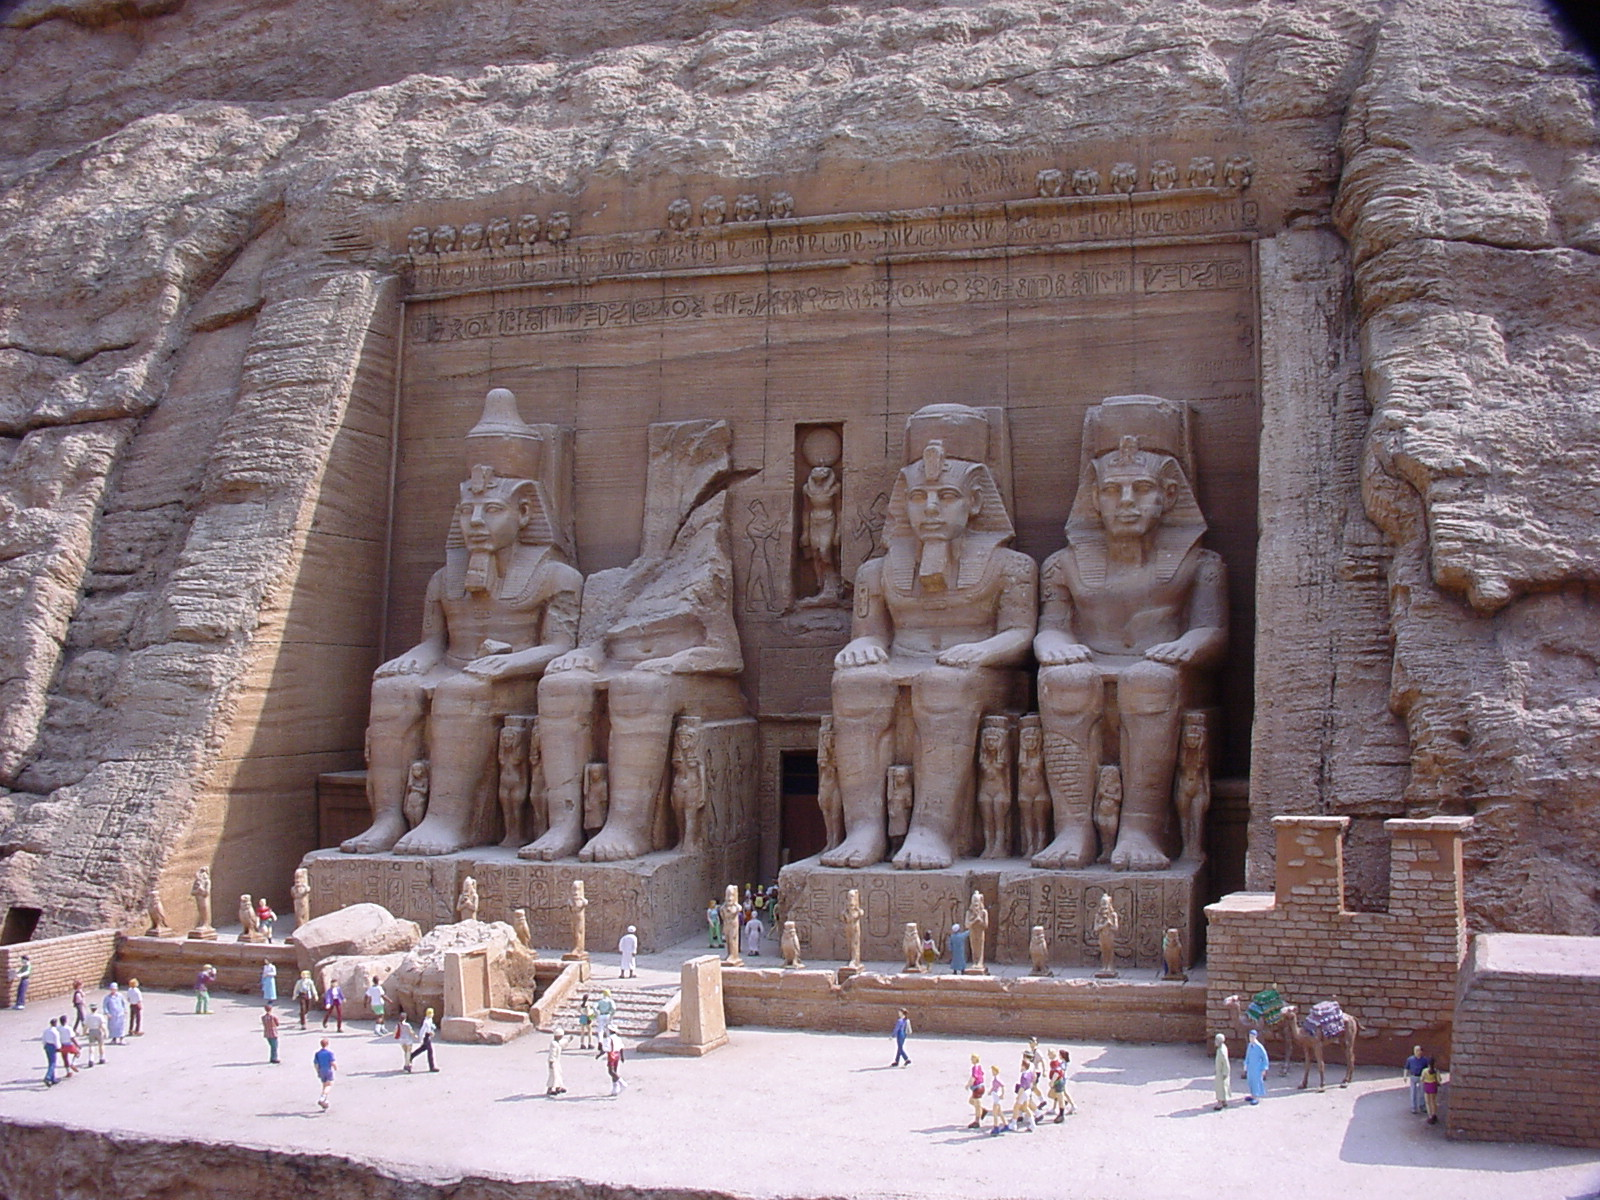 http://upload.wikimedia.org/wikipedia/commons/f/f5/Tobu_World_Square_Great_Temple_of_Abu_Simbel_1.jpg